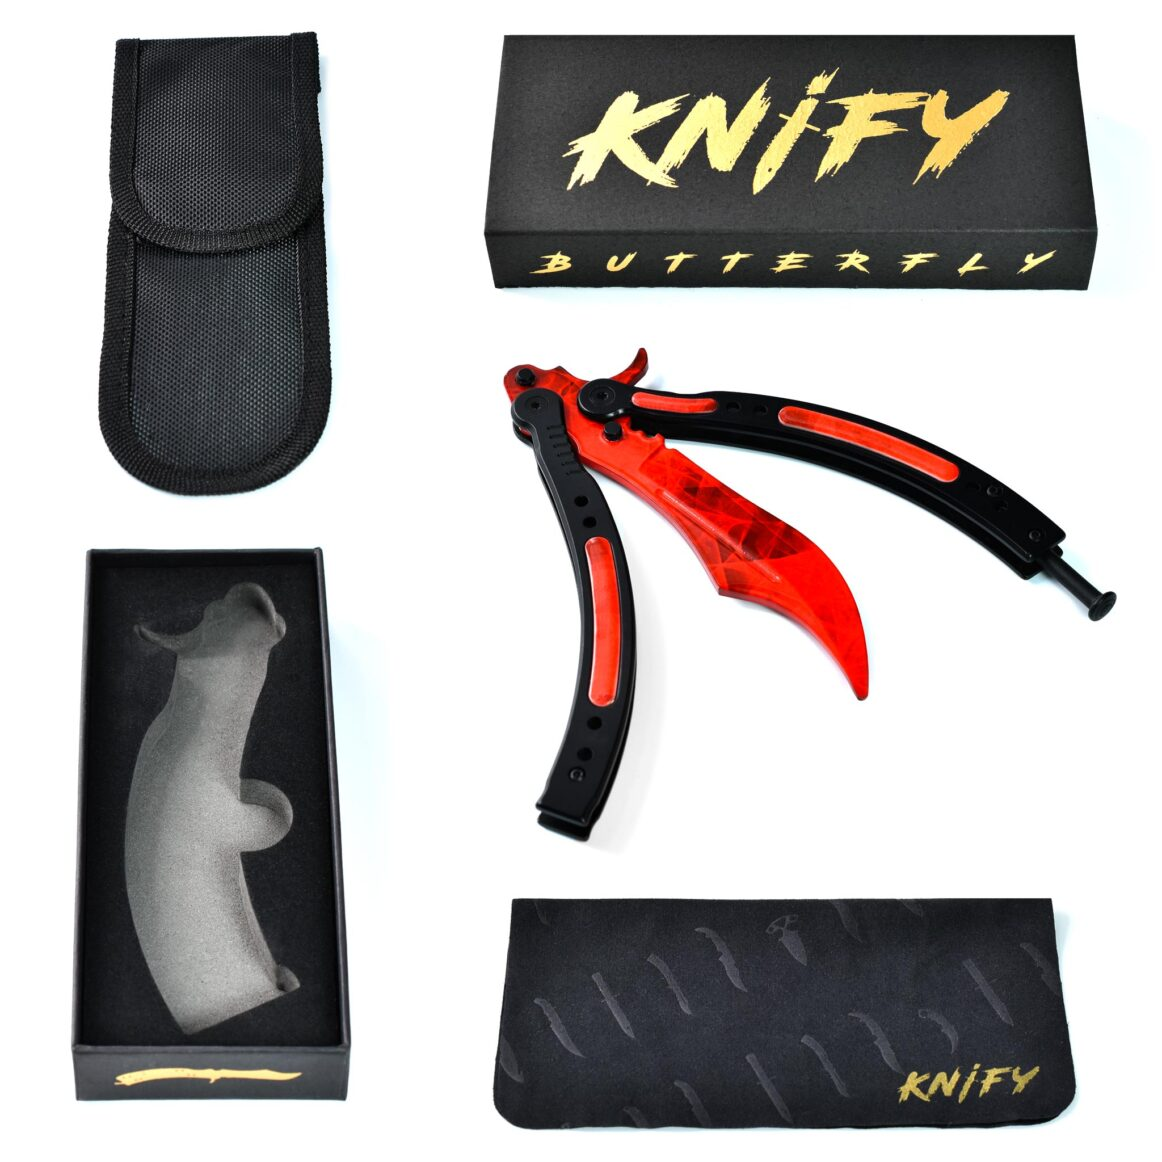 Couteau CS:GO IRL Butterfly Doppler Ruby - Vrai Couteau Papillon Doppler Ruby